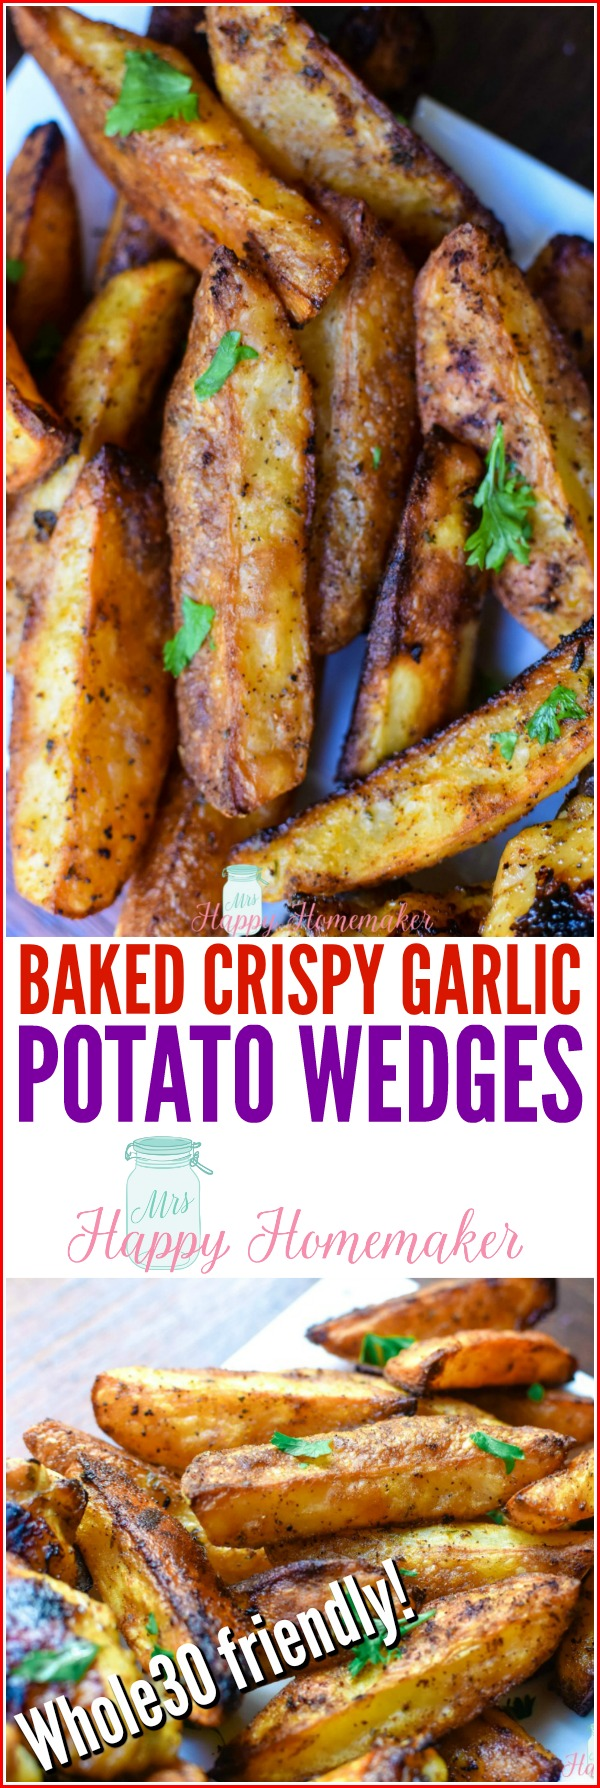 Baked Crispy Garlic Potato Wedges